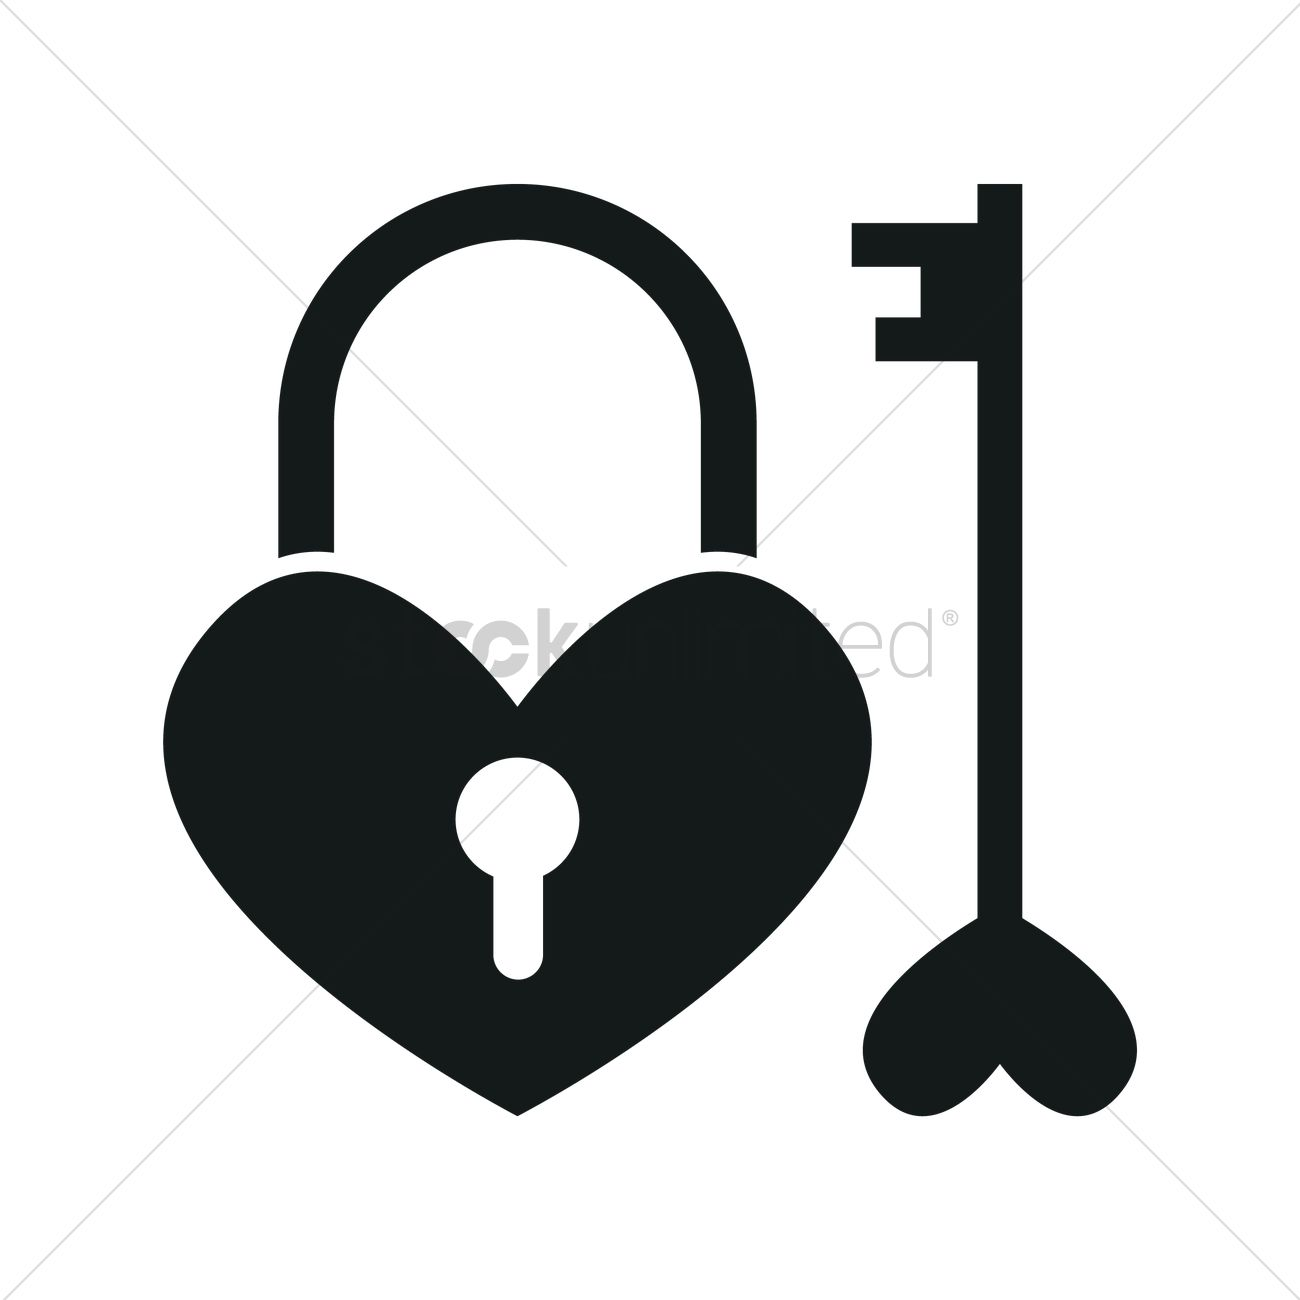 Key And Lock Heart Vector Image 1900601 Stockunlimited